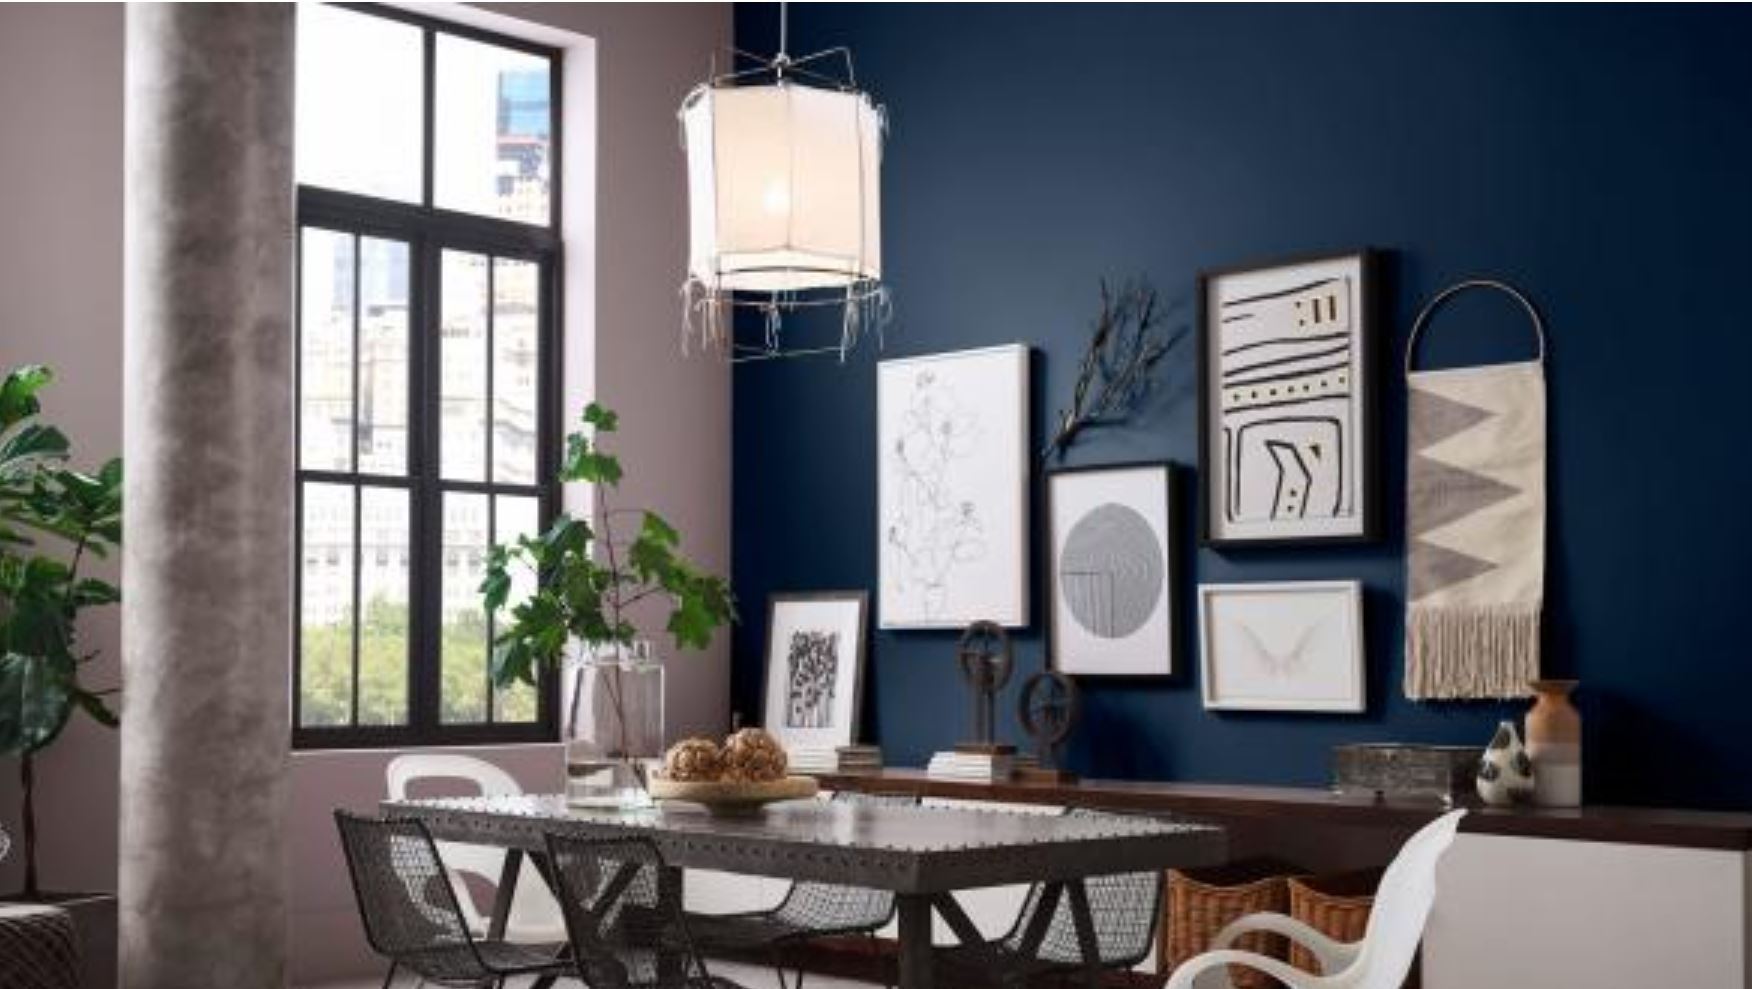 January Magazine 2020 What is trending a dozen home and design ideas for 2020 Hoey Team eXp Realty